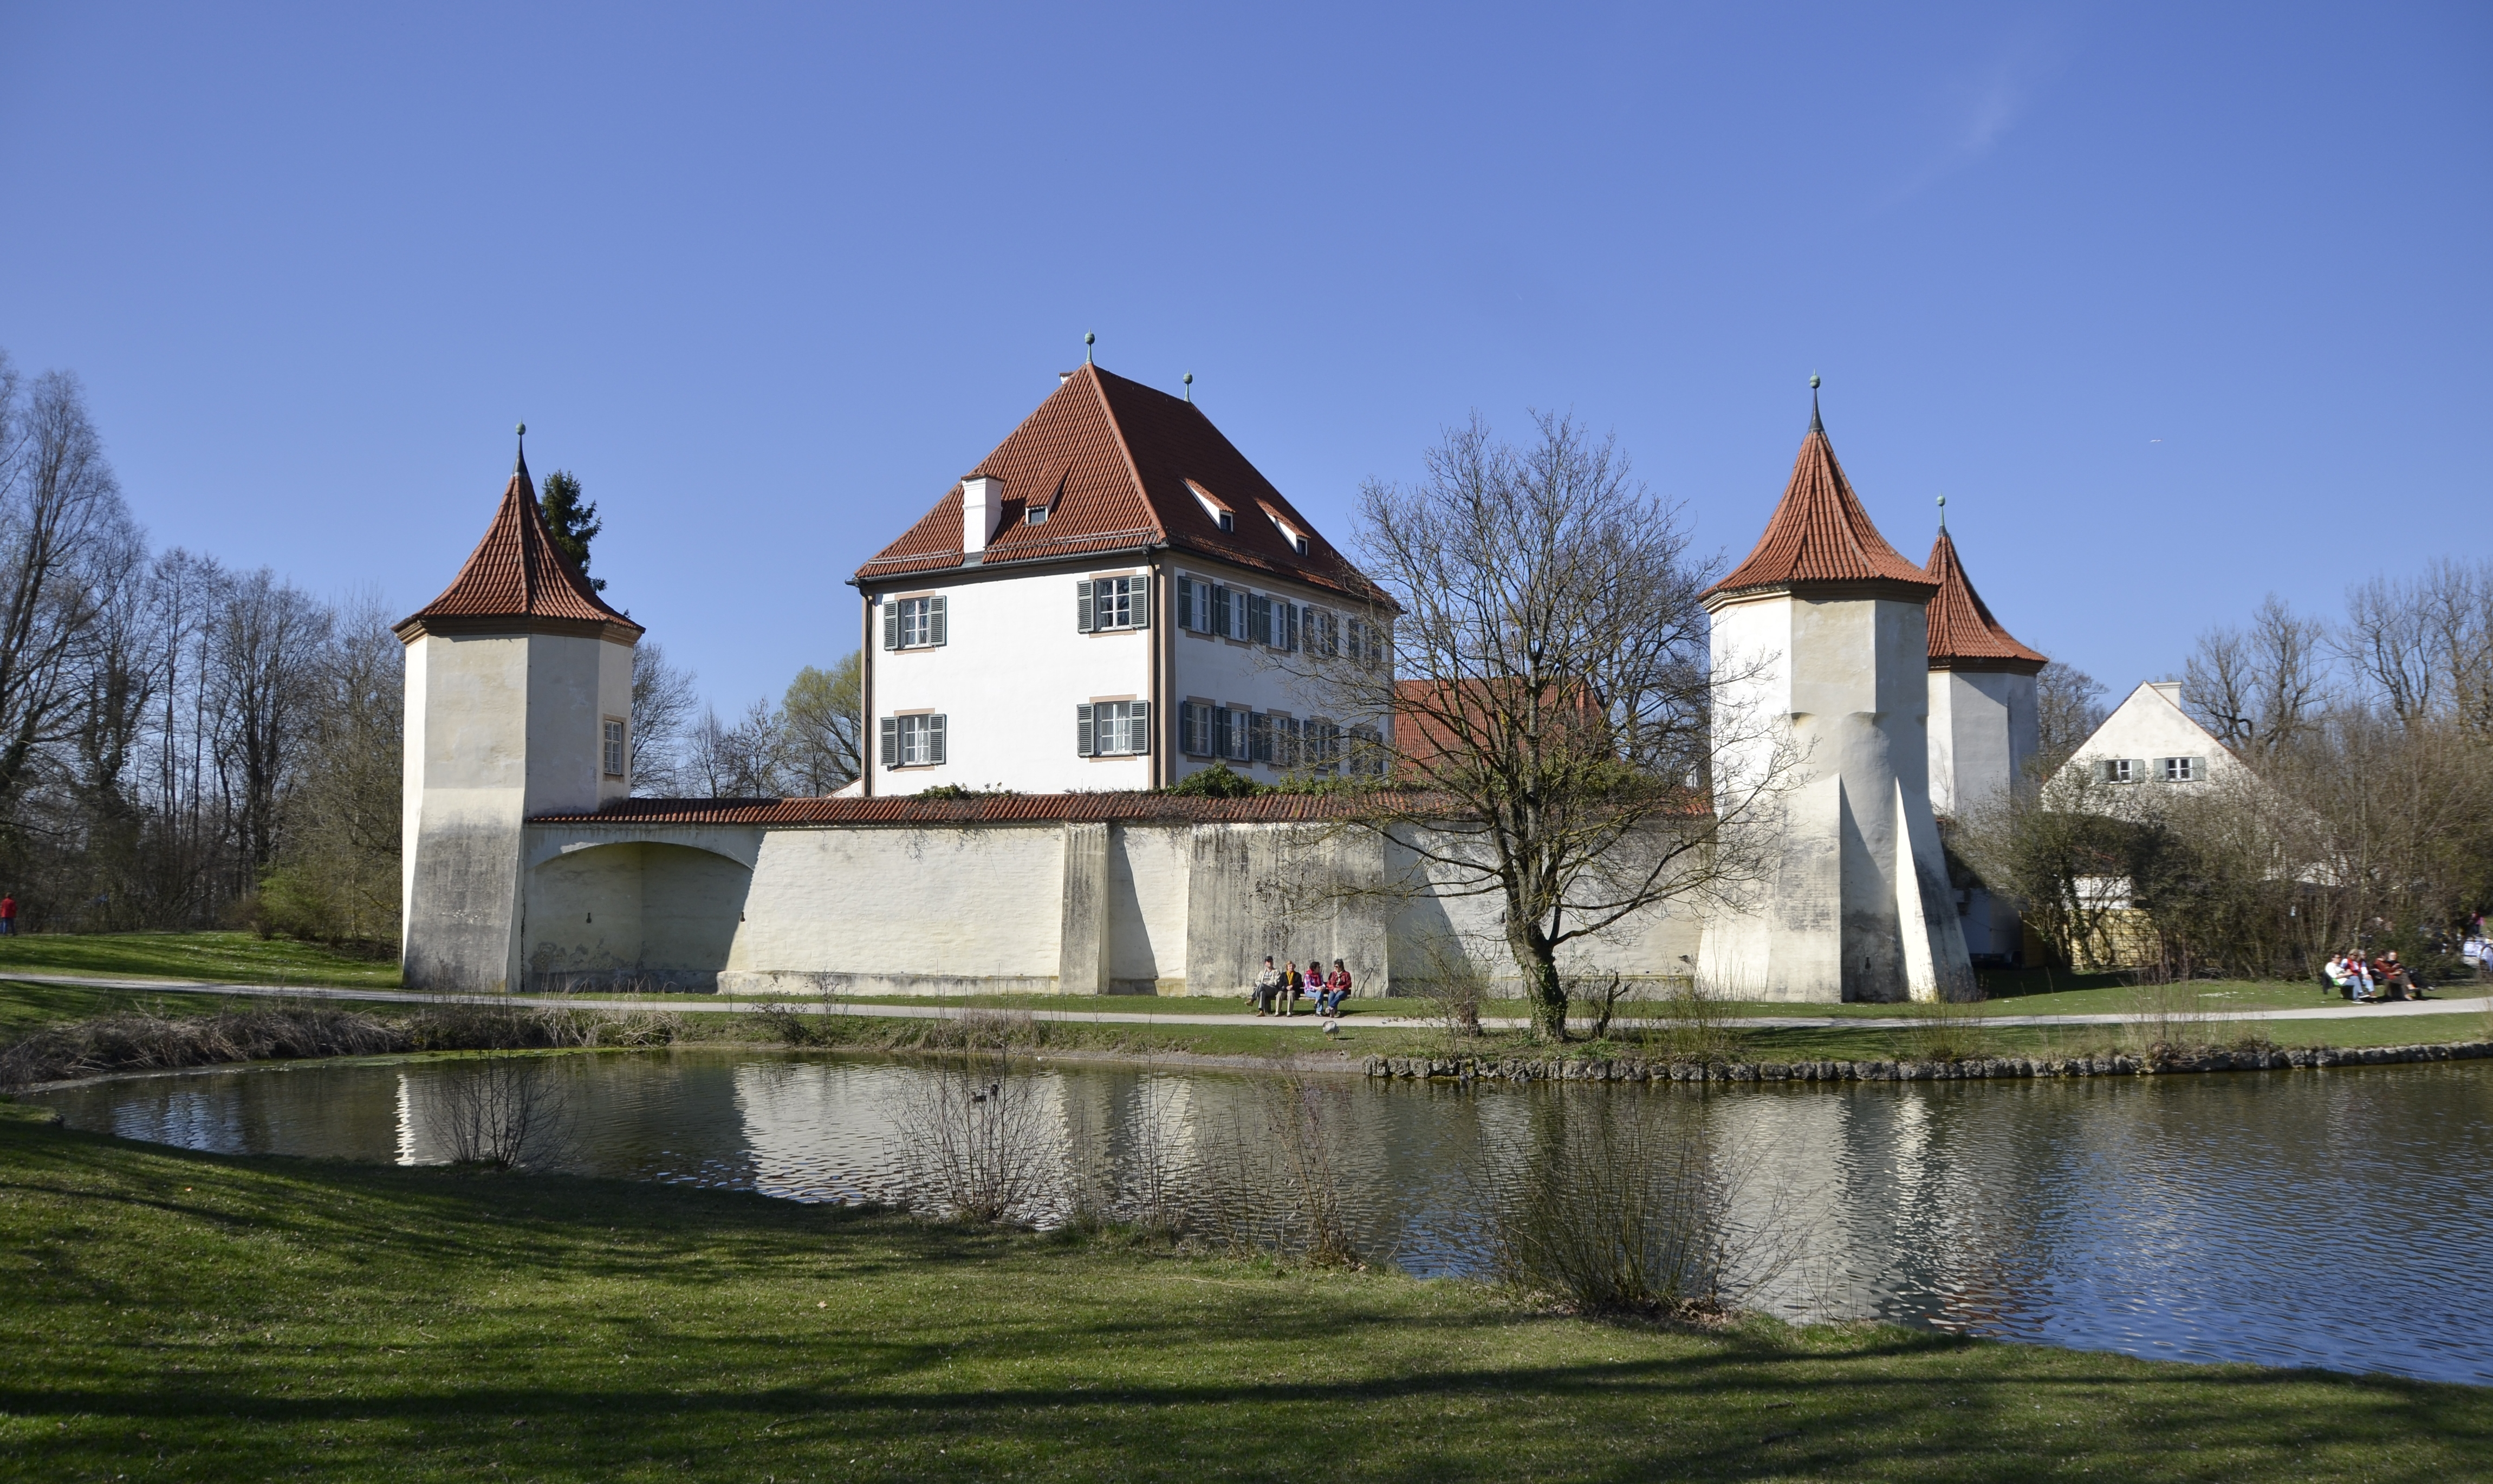 Blutenburg Castle in the West of Munich, 2014 (deux)